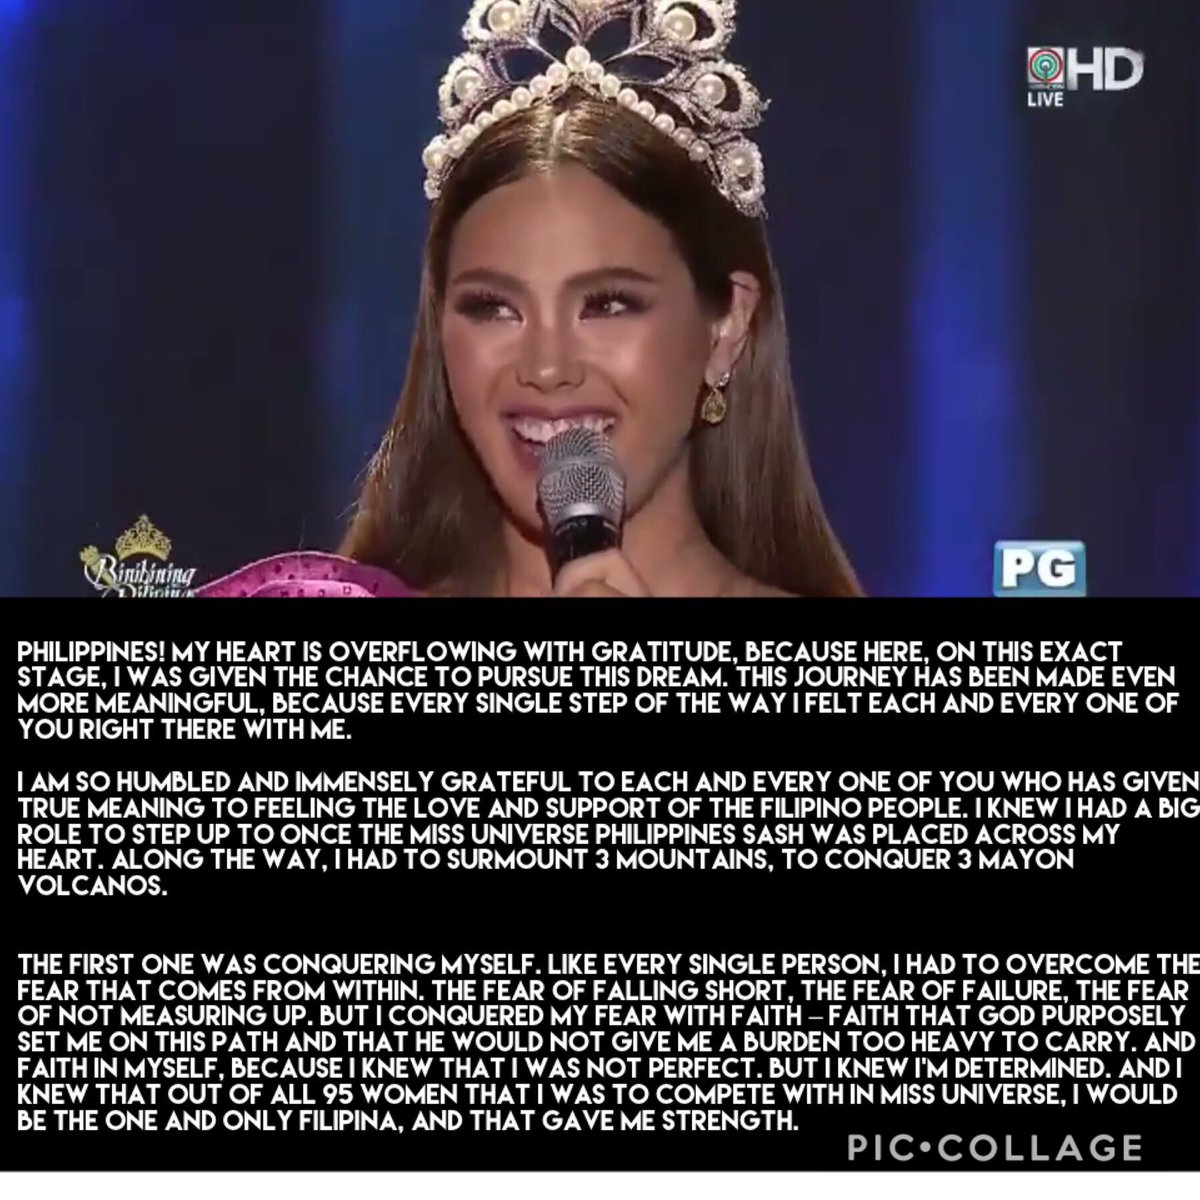 Transcript of Catriona Gray's final speech.   Thank you  my Queen Catriona Elisa! You will forever be my favorite Binibini and Miss Universe!   #BinibiningPilipinas2019  #BbGrandCorinationNight2019  #BbPilipinas2019<br>http://pic.twitter.com/AmZeBmBhAC